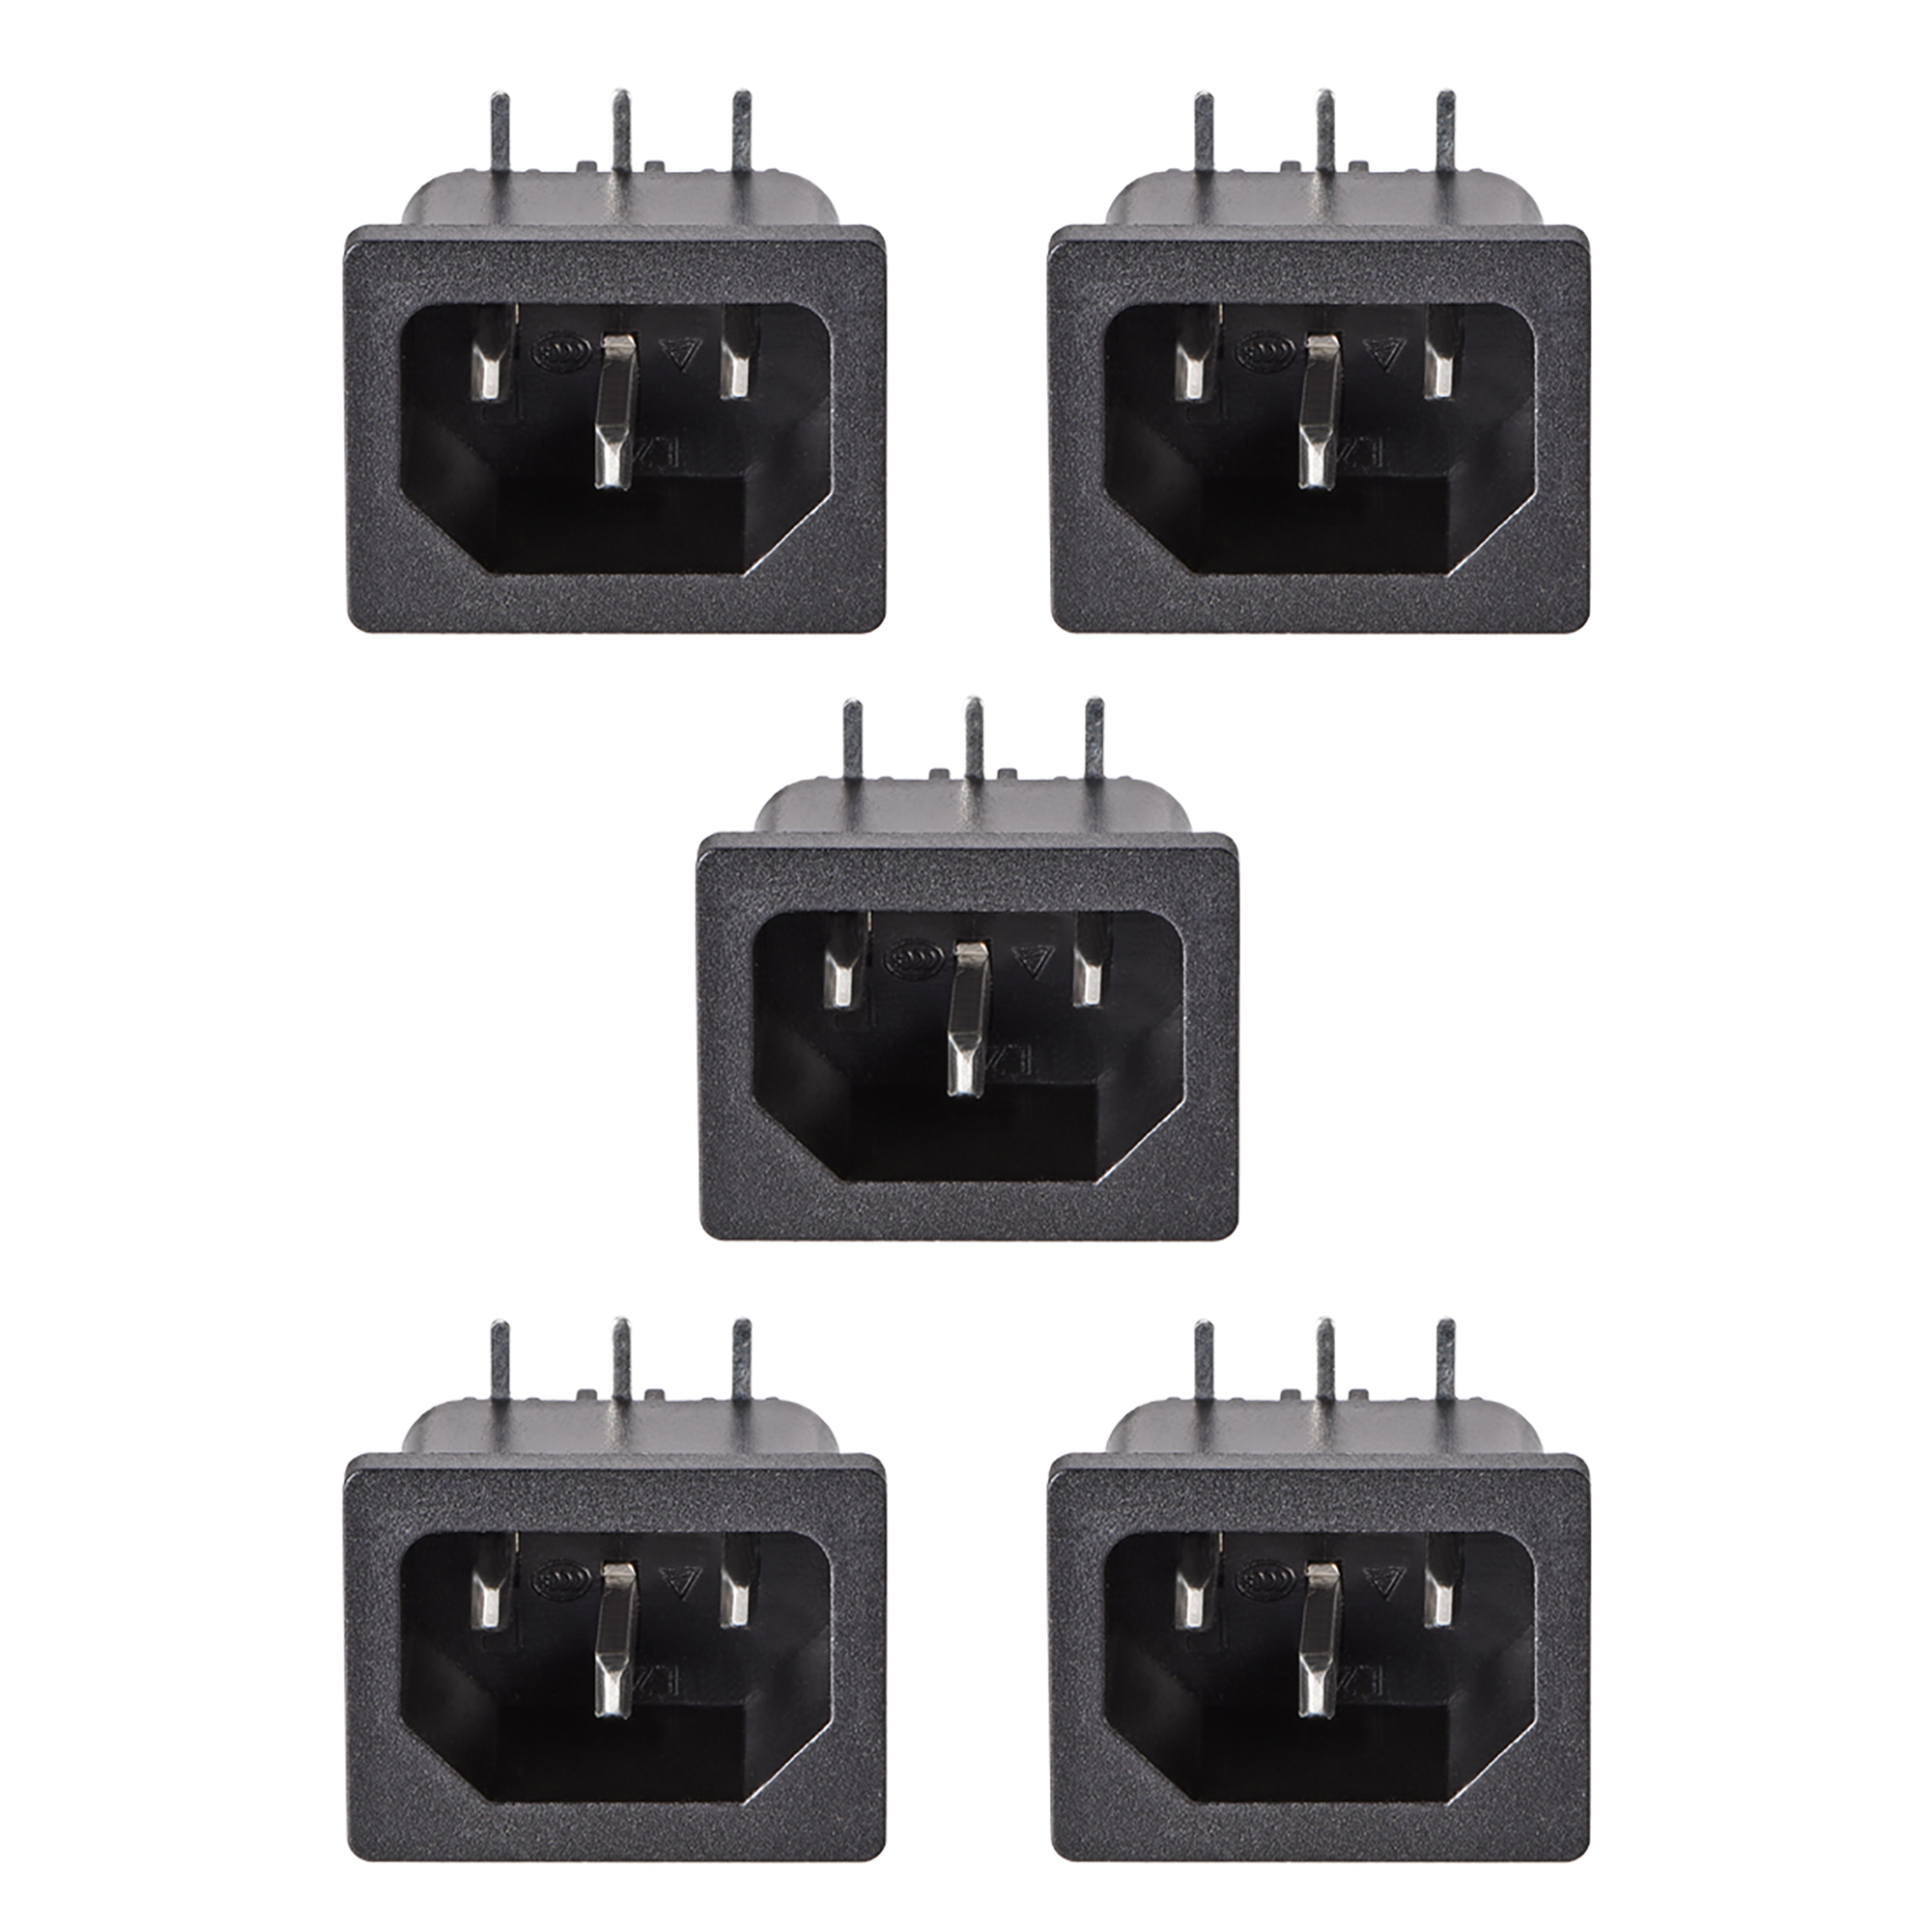 uxcell C14 Panel Mount Plug Adapter AC 250V 10A 3 Pins IEC Inlet Module Plug Power Connector Socket Right Angle Pack of 5